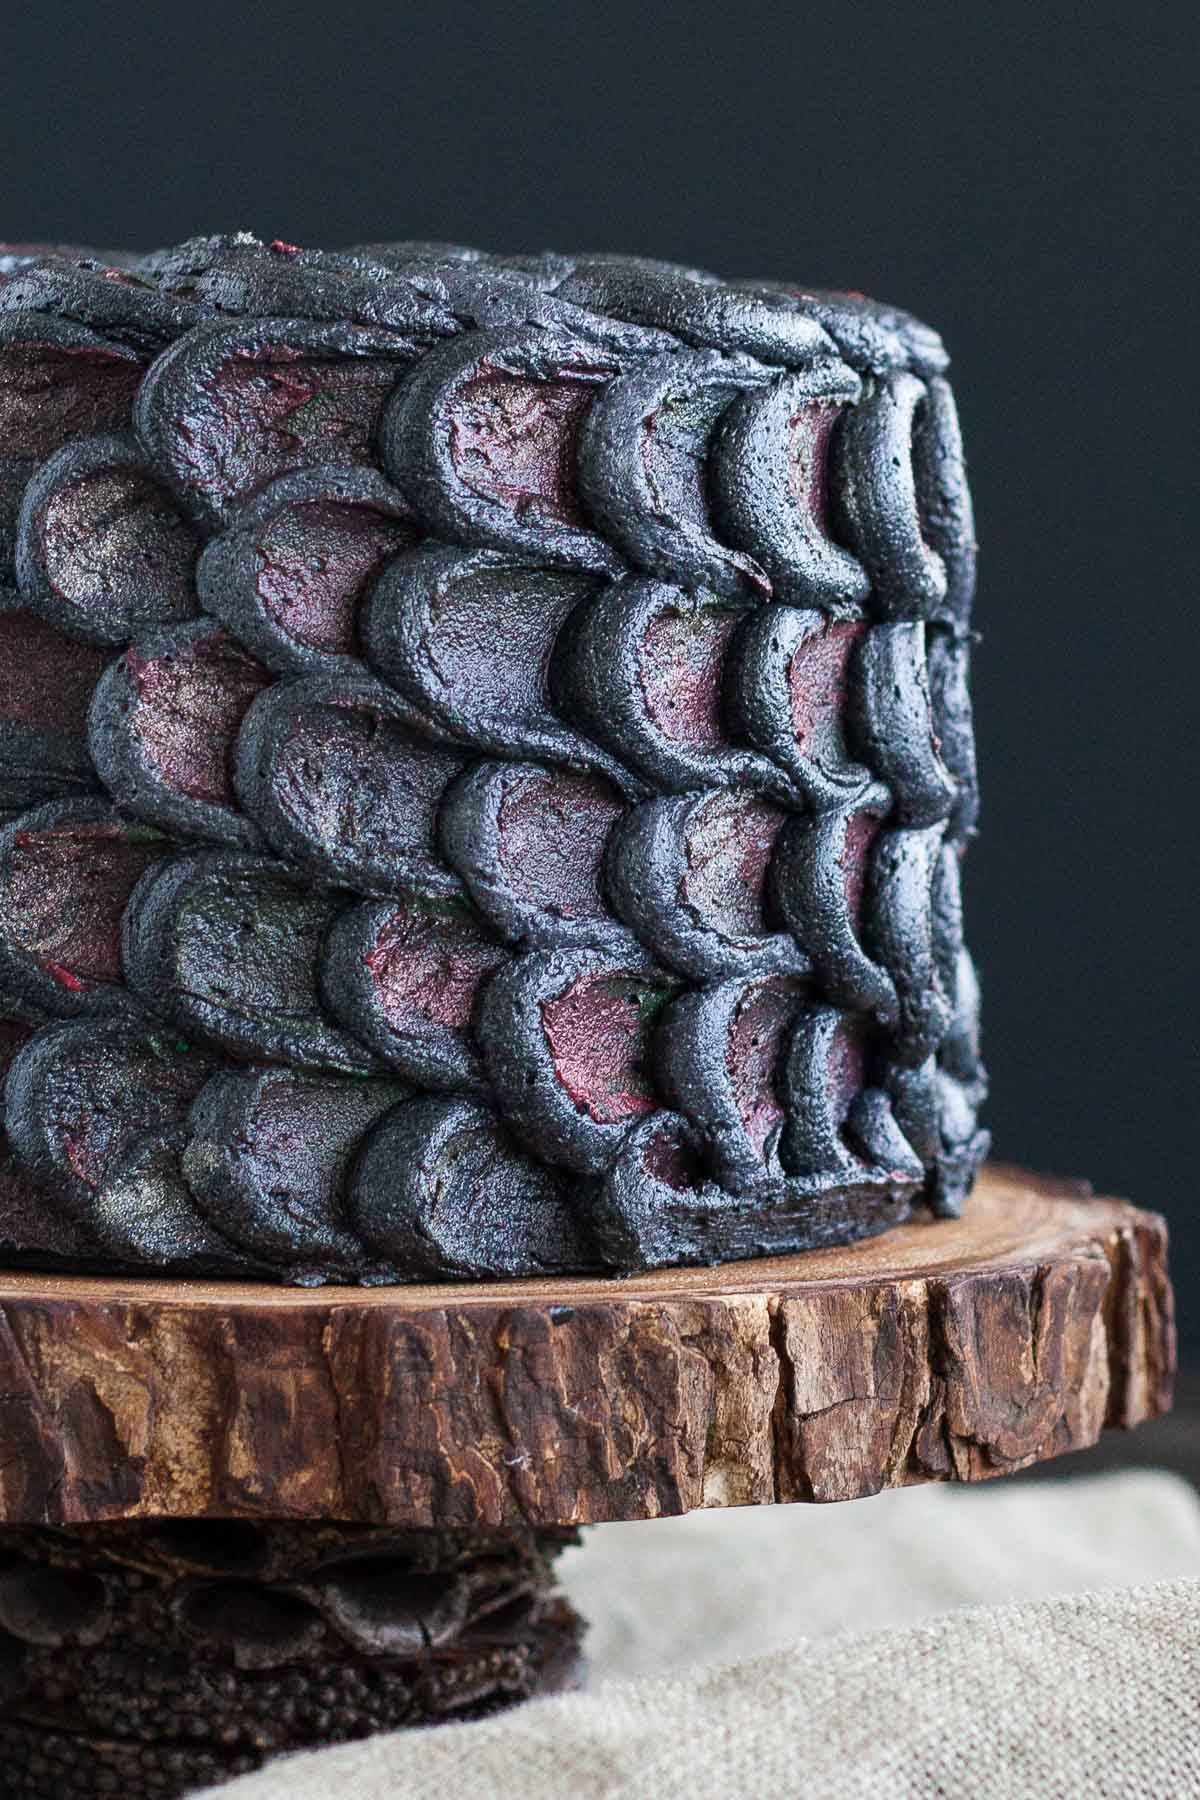 Use this simple decorating technique to create the perfect red velvet Dragonscale Cake and impress your Game of Thrones loving friends! | livforcake.com